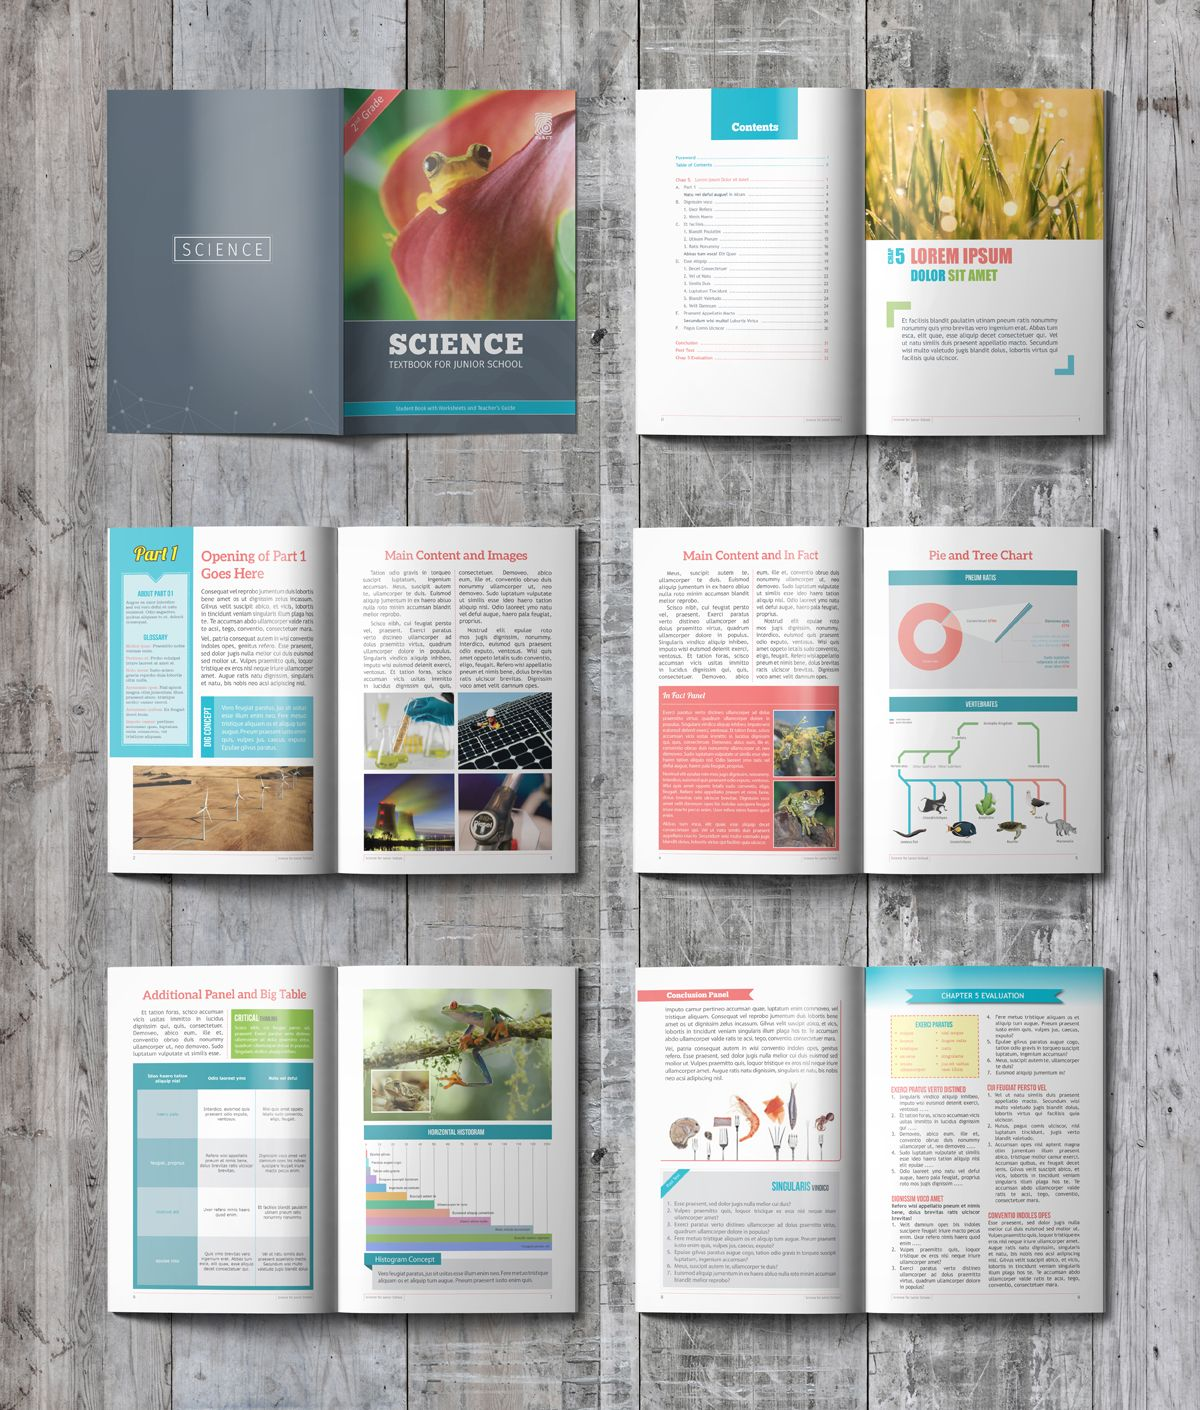 Carefully Handcrafted Textbook Template Created With Adobe Indesign Template Available With Some St Book Design Layout Book And Magazine Design Booklet Design